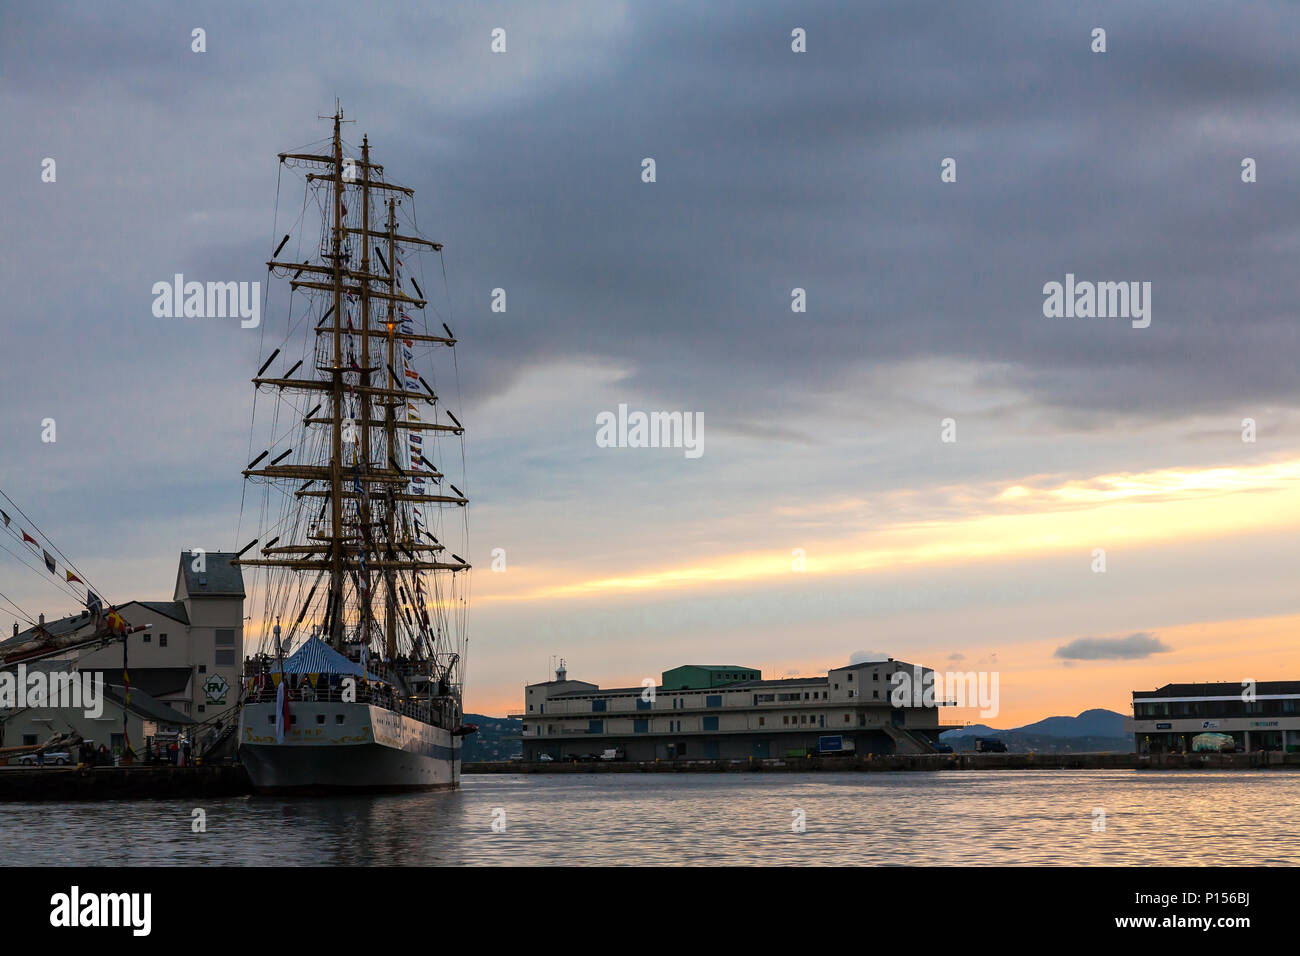 Tall Ships Race 2008. Bergen, Norway - August 2008. The Russian Mir (square rigged sail ship) - Stock Image